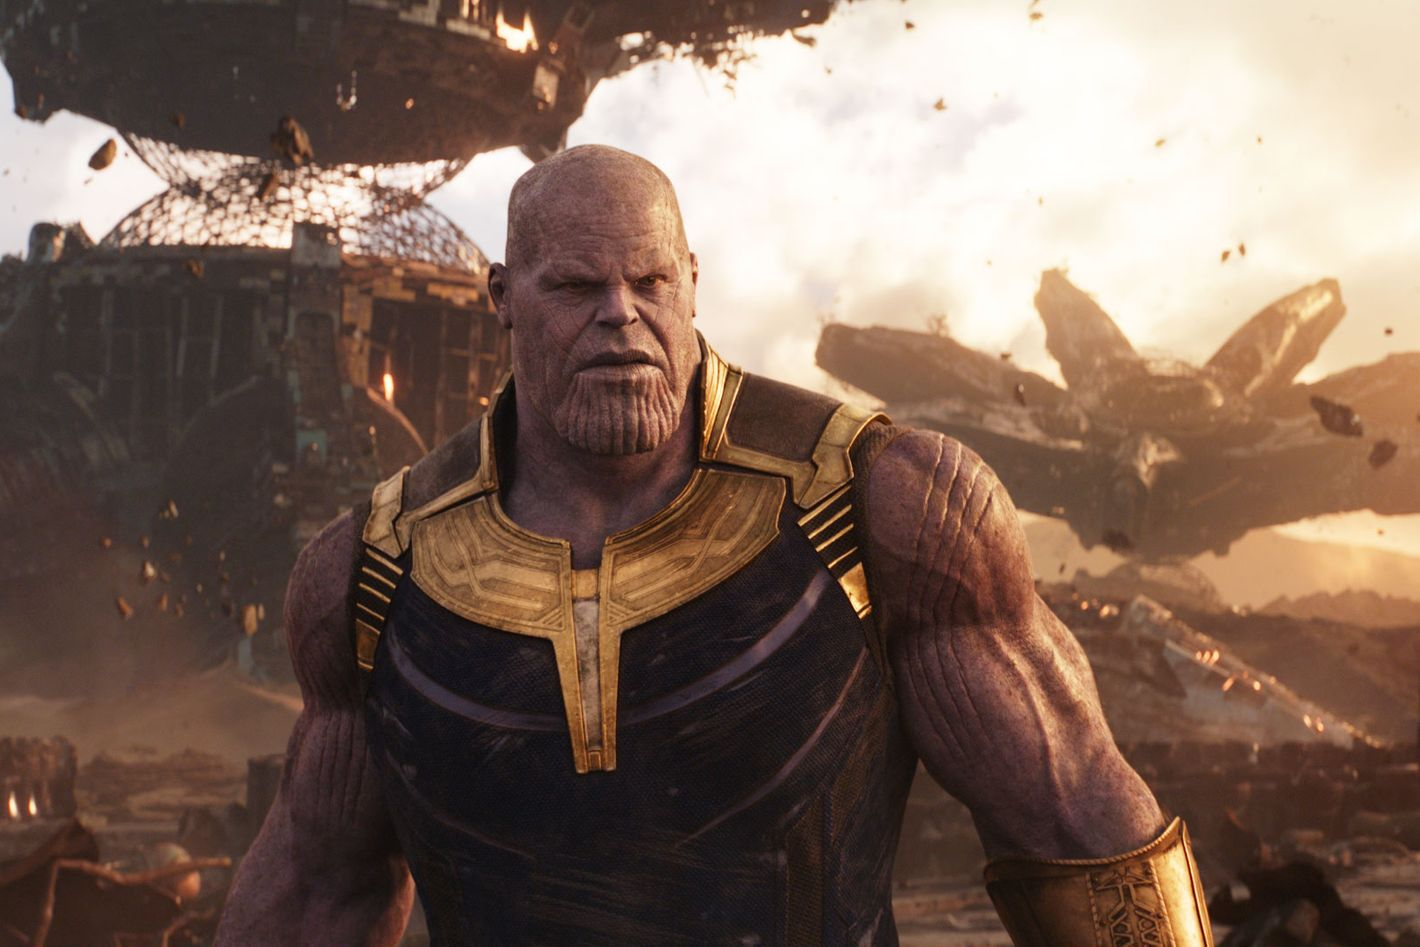 Jim Starlin, Creator of Endgame's Thanos, Has a Marvel Beef